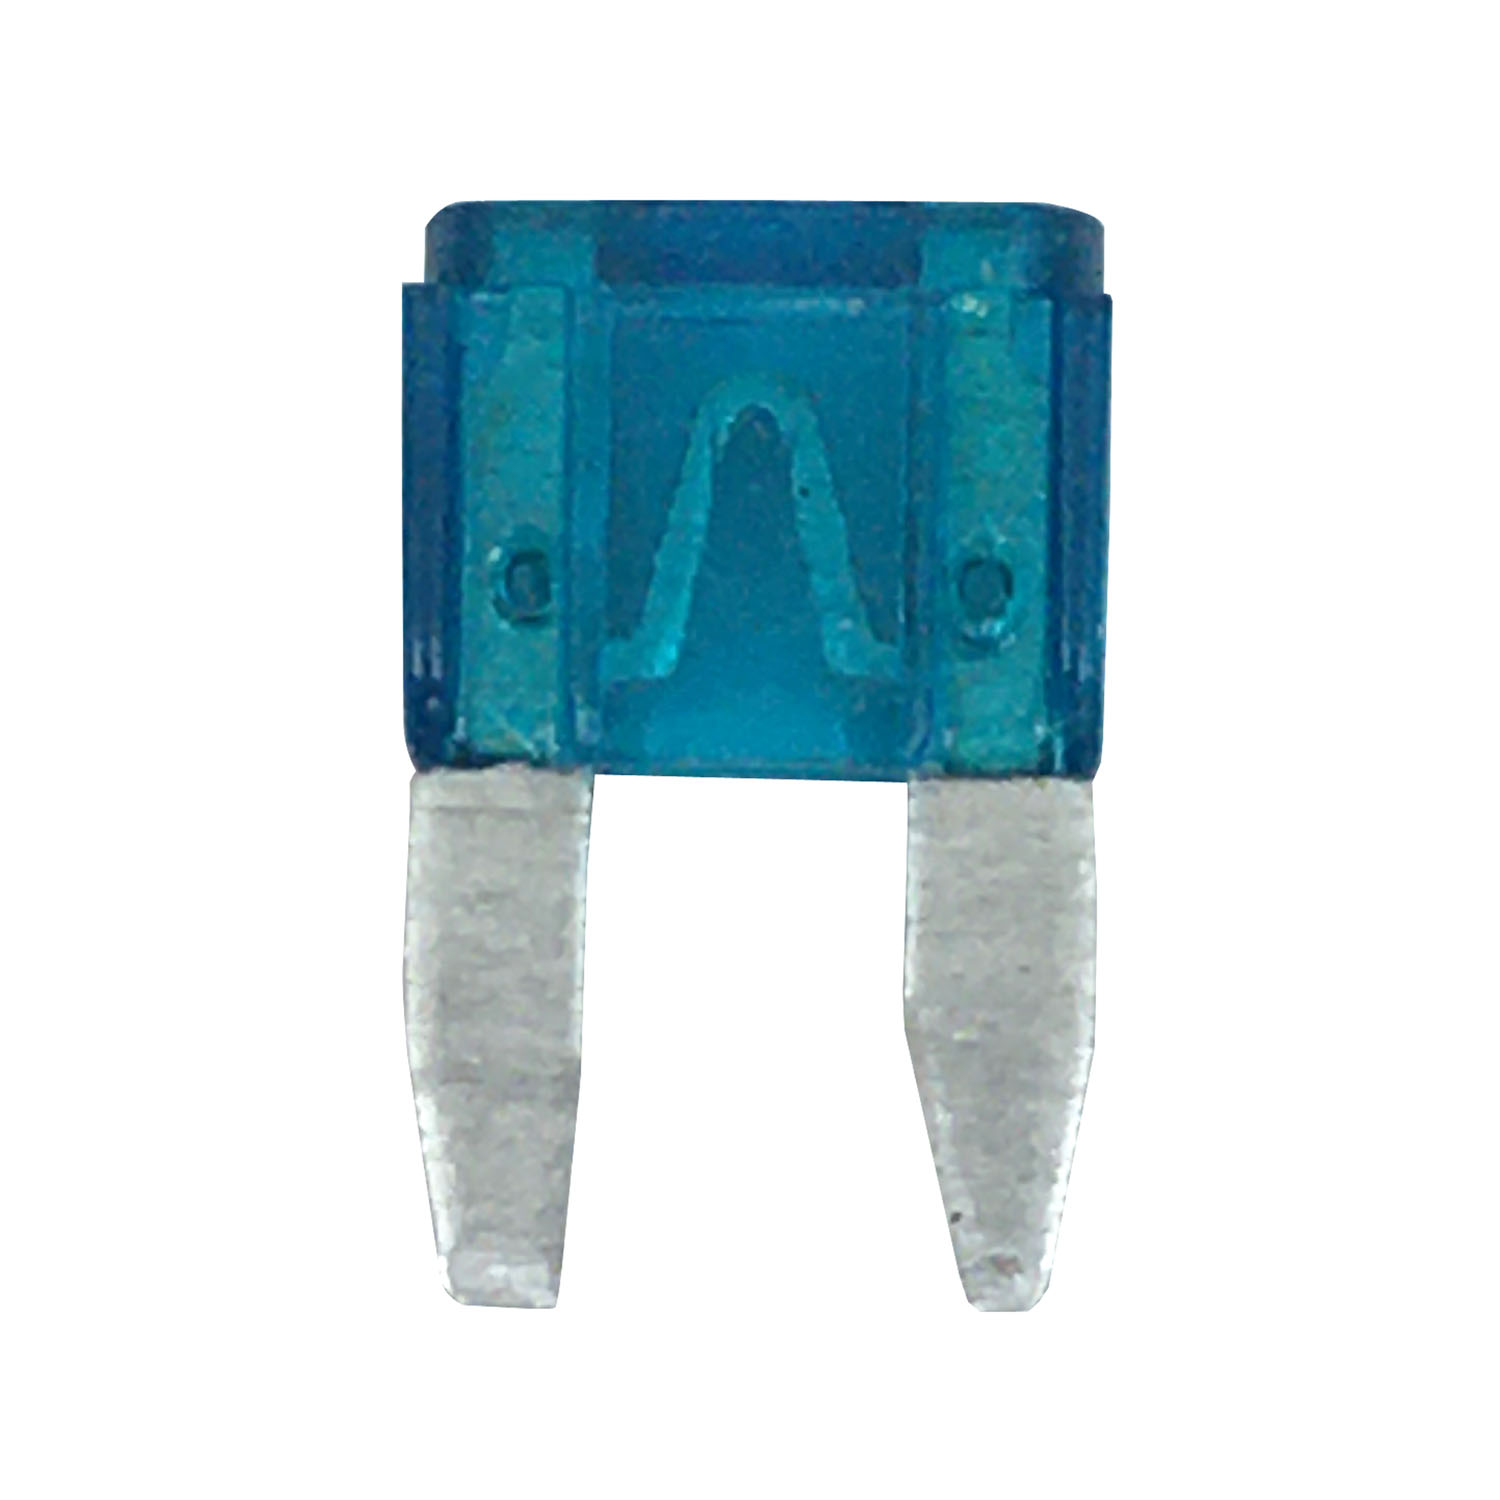 AST15X - Twinpoint 15 Amp Mini Blade Fuse (Bulk) Individually Sold